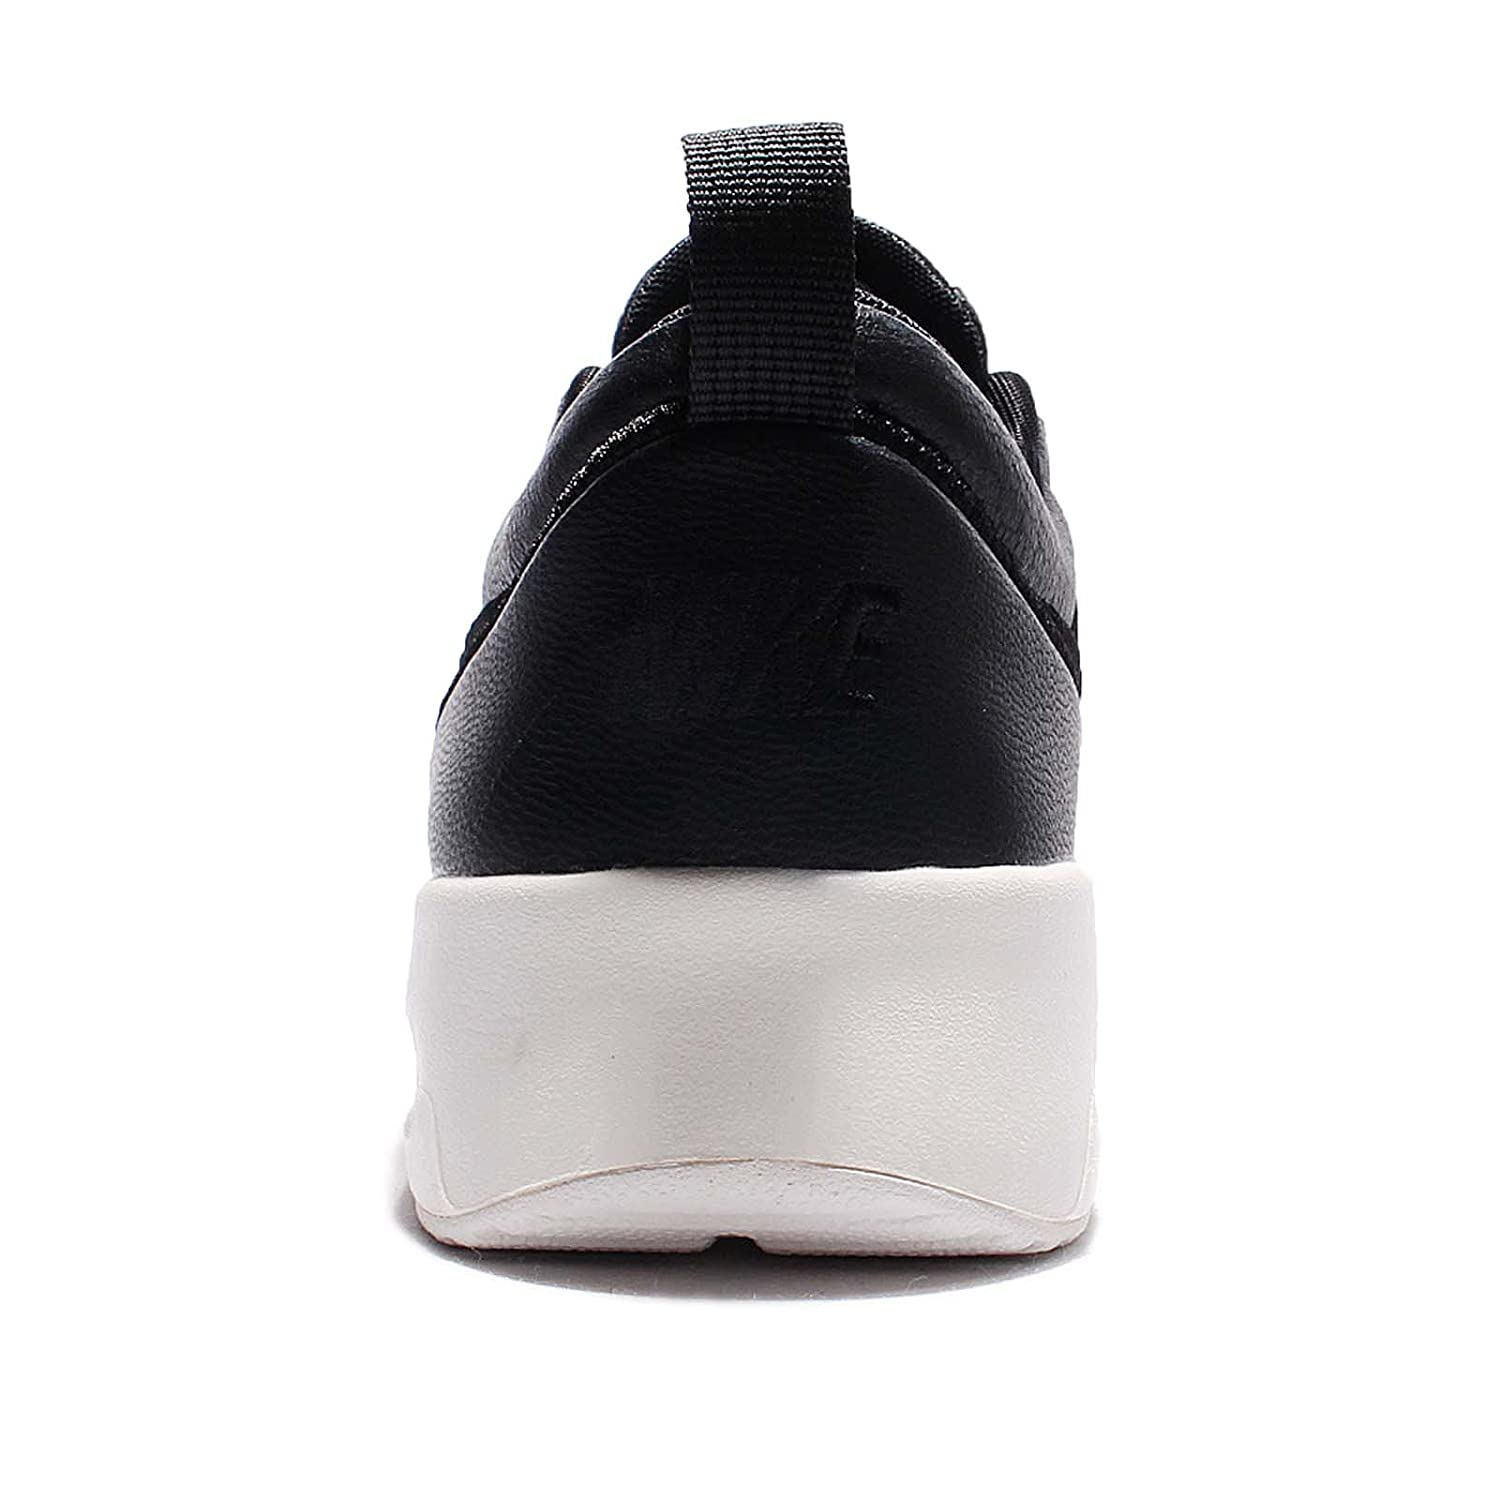 san francisco 4c032 e7bd8 Amazon.com   Nike Womens Air Max Thea Ultra SI Running Trainers 881119  Sneakers Shoes   Road Running